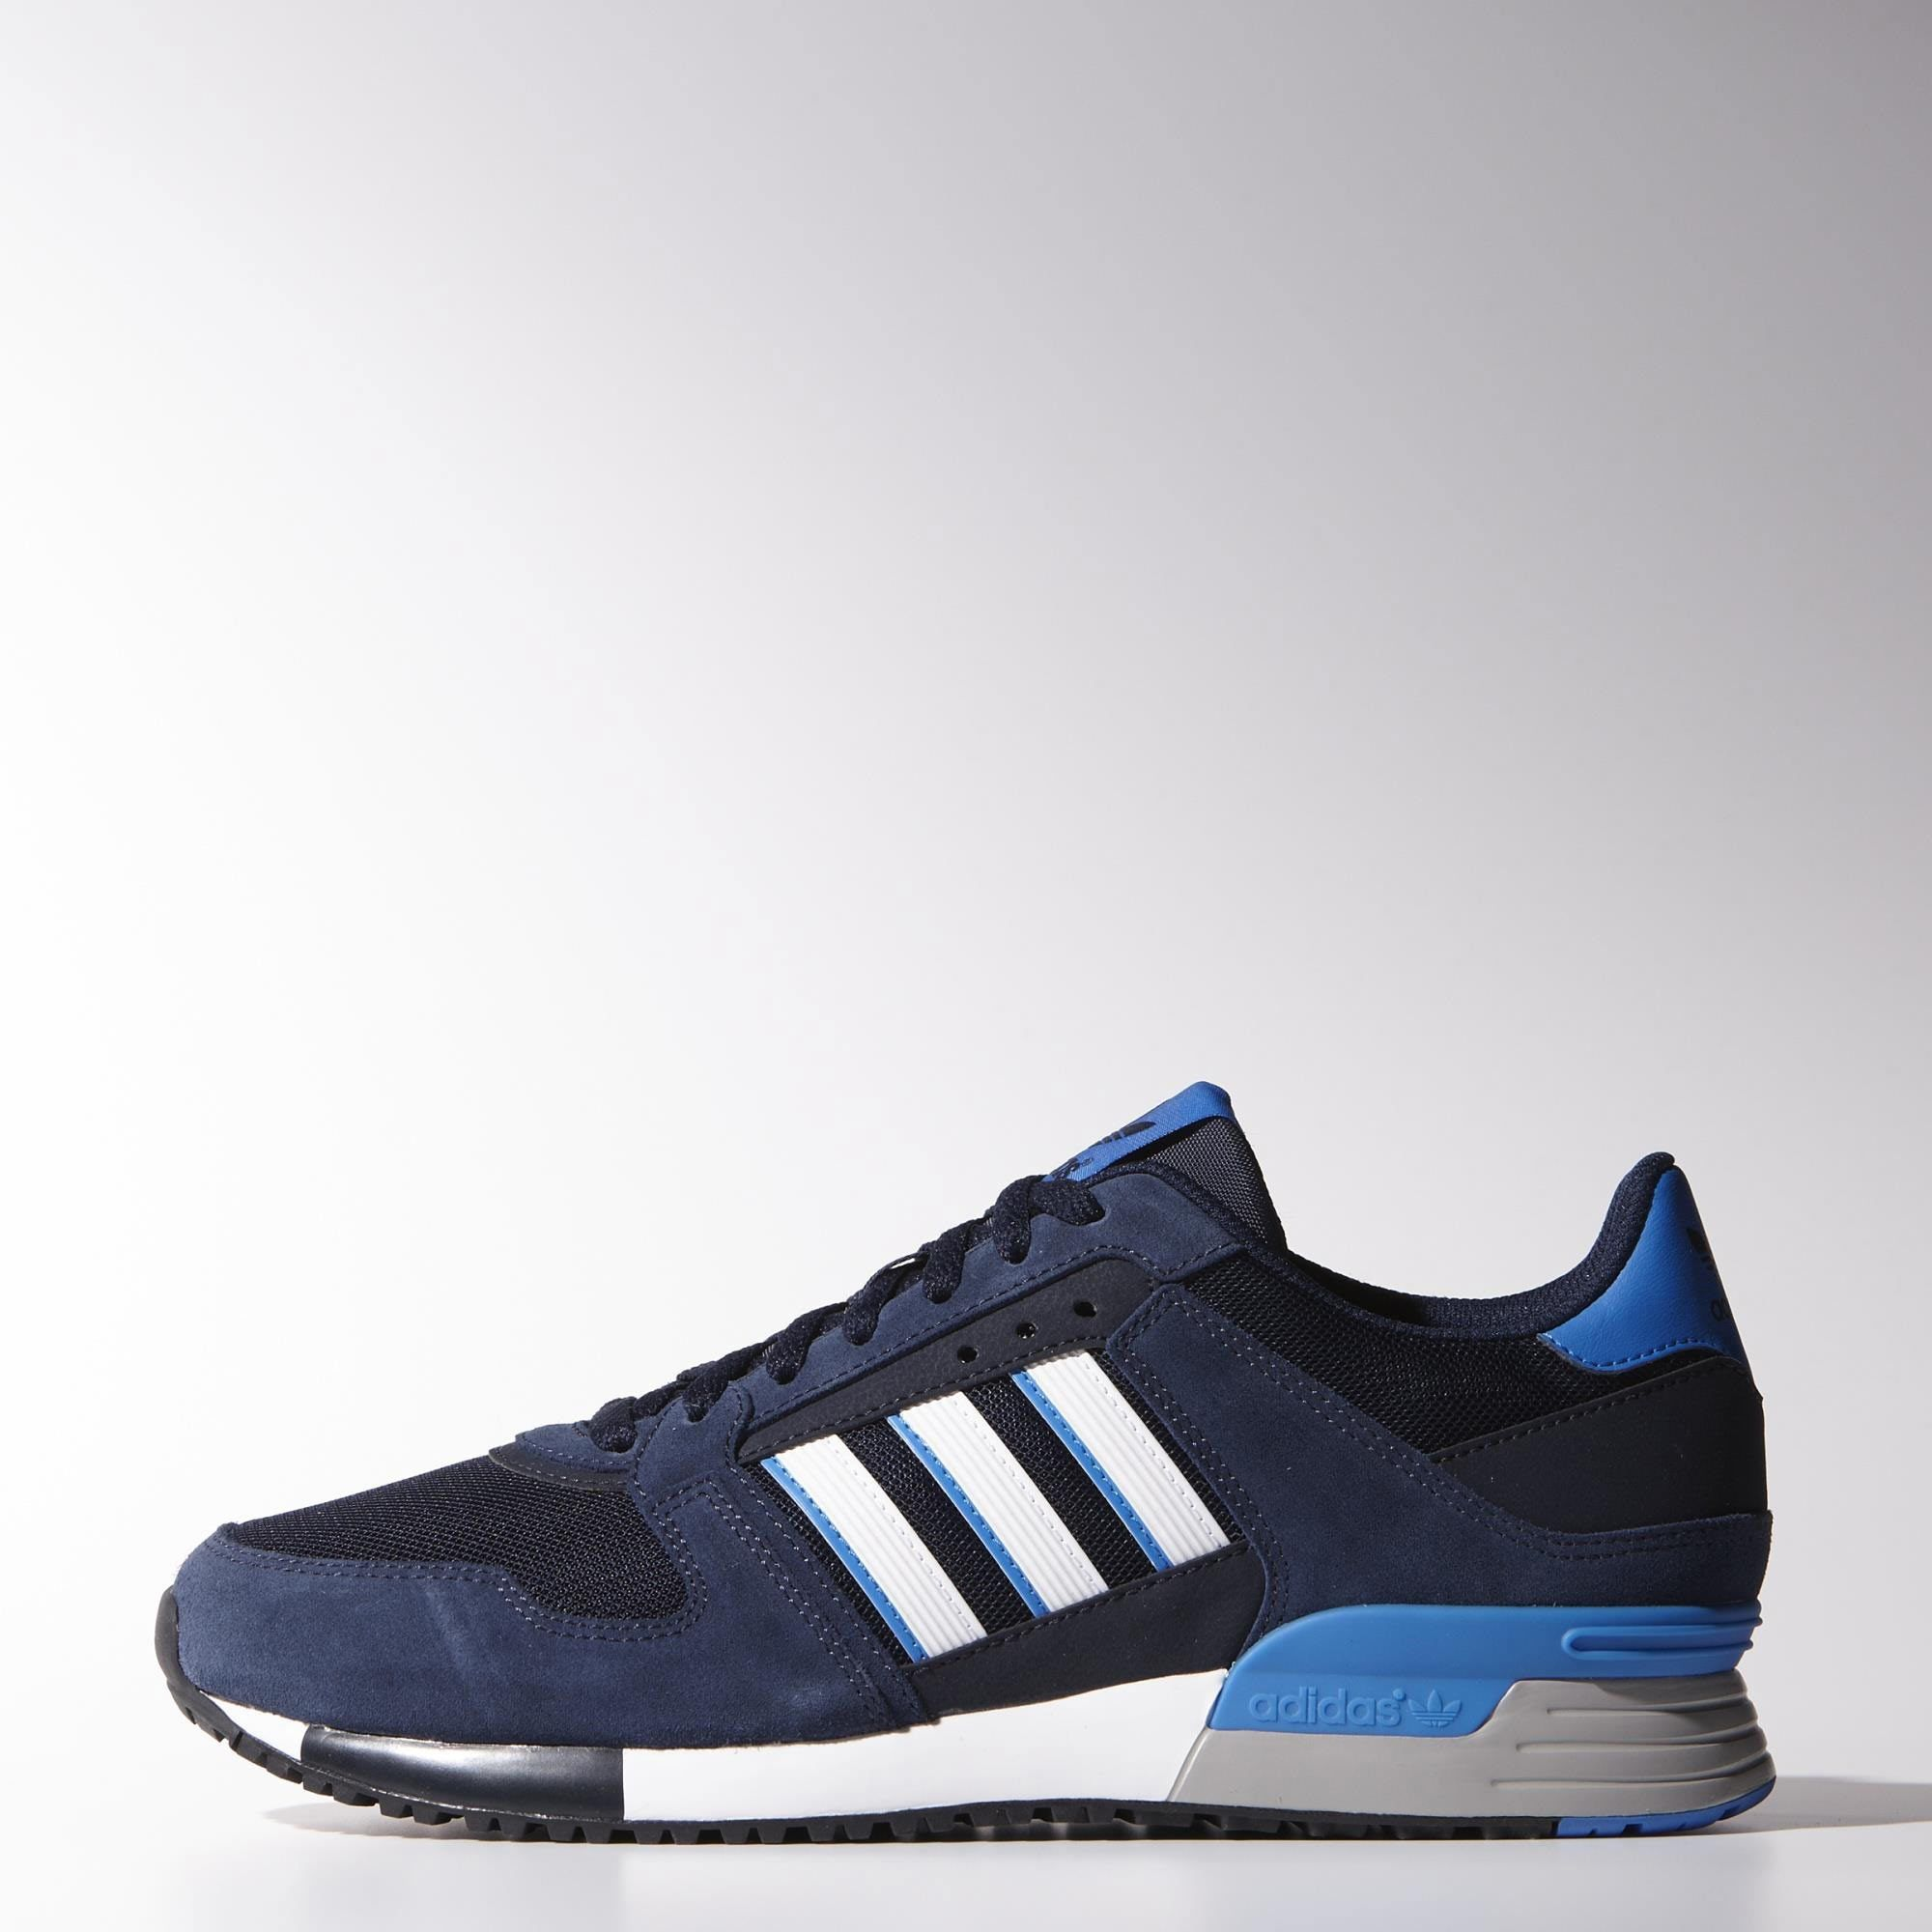 on sale 18f5e 1442e spain adidas zx 630 shoes adidas australia f8796 1dcd7